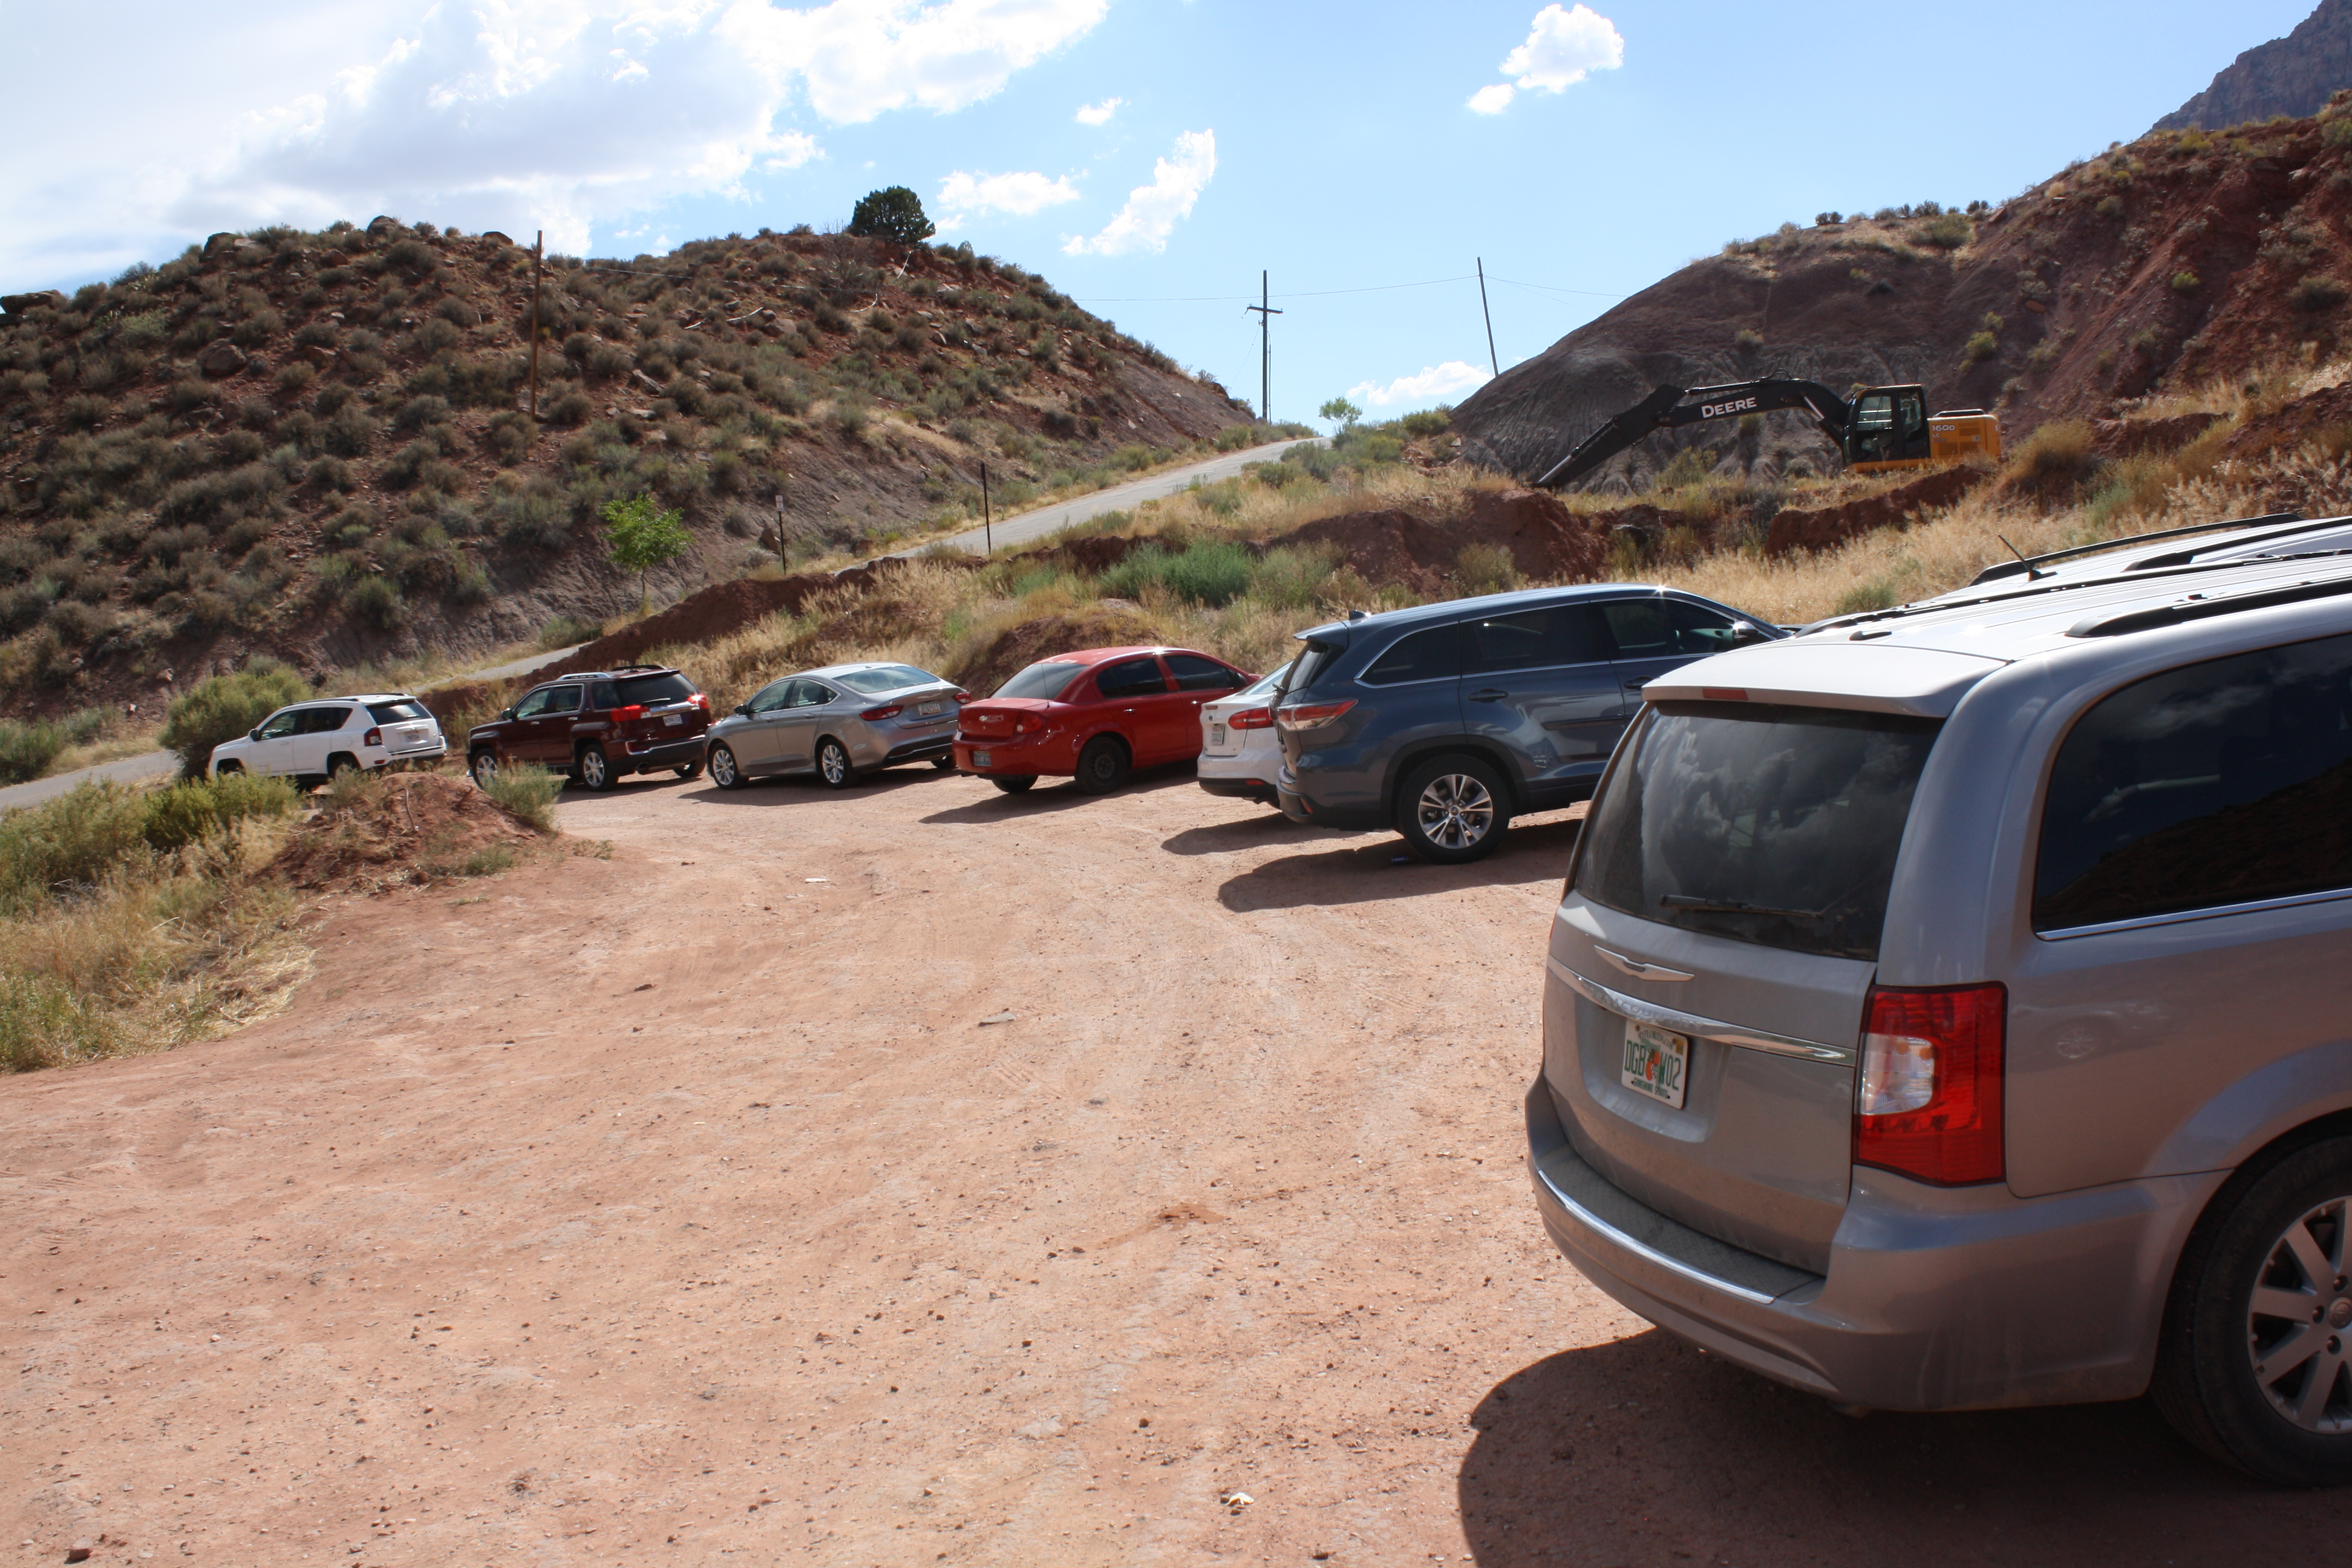 Cars parked along a dirt strip adjacent to Balanced Rock Road in Springdale, the future site of a new parking structure just approved by the Springdale Town Council on Aug. 10. Springdale, Utah, July 20, 2016 | Photo by Reuben Wadsworth, St. George News